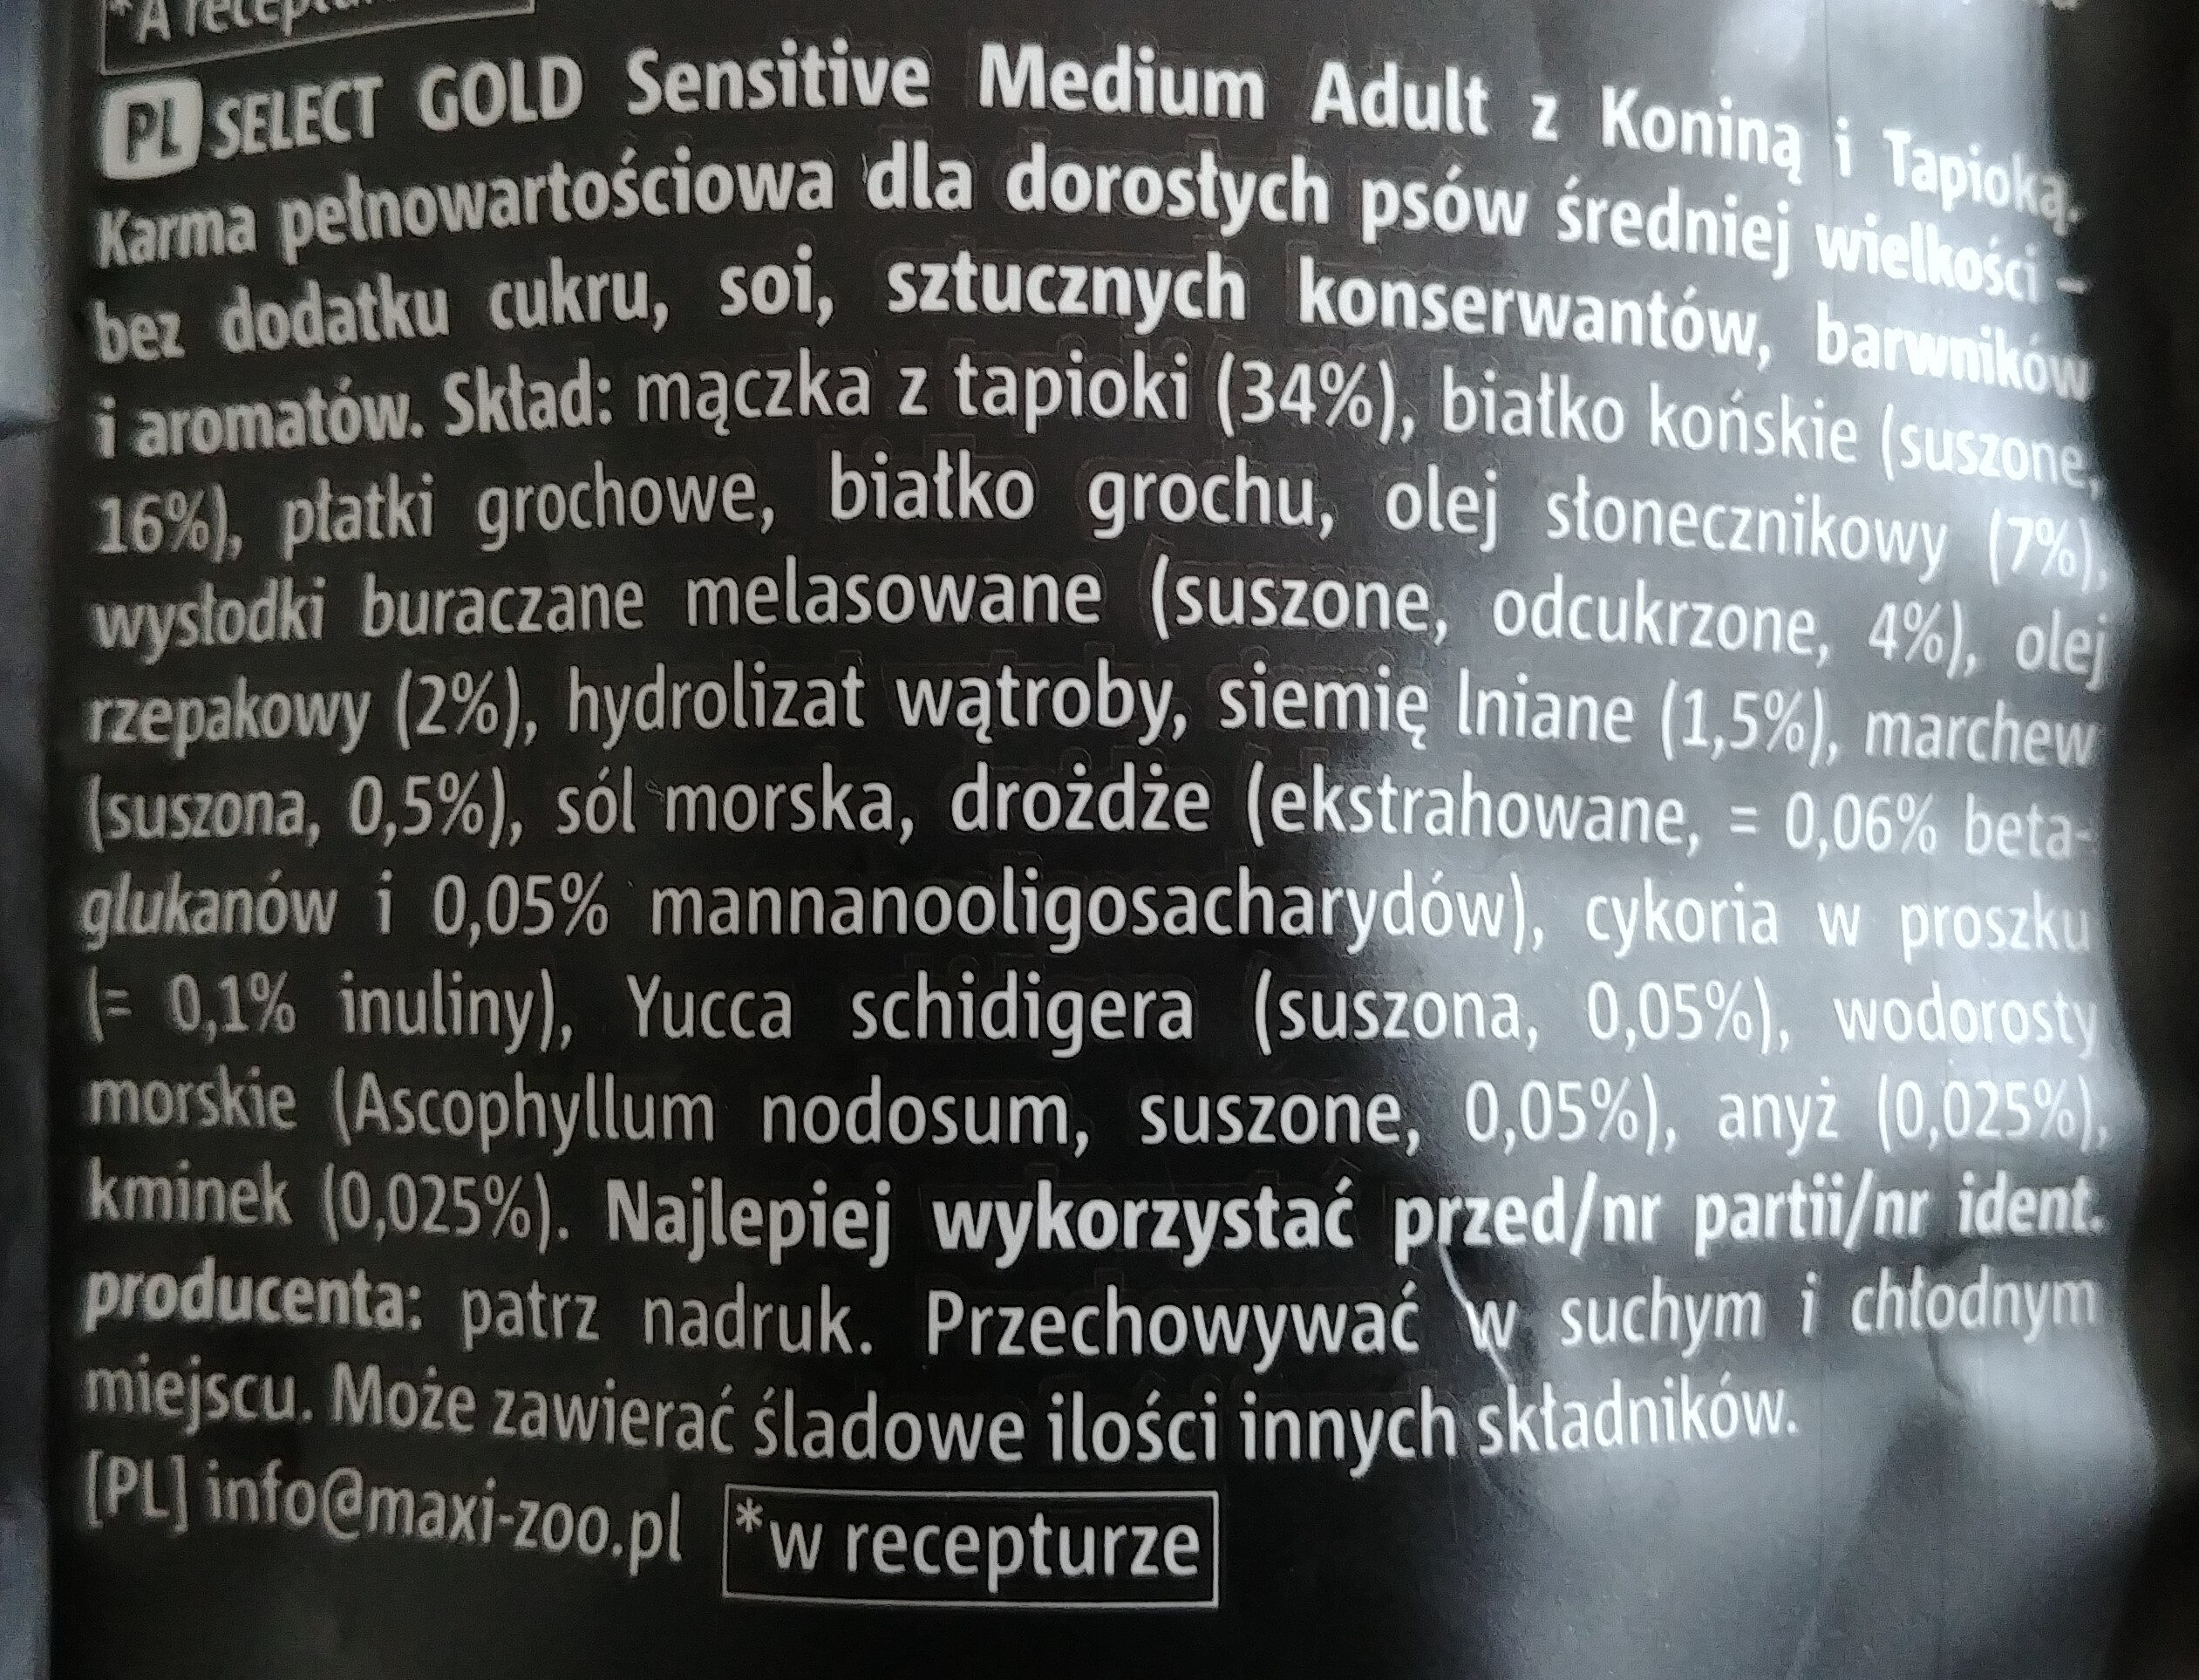 Sensitive Medium Adult z Koniną i Tapioką - Ingredients